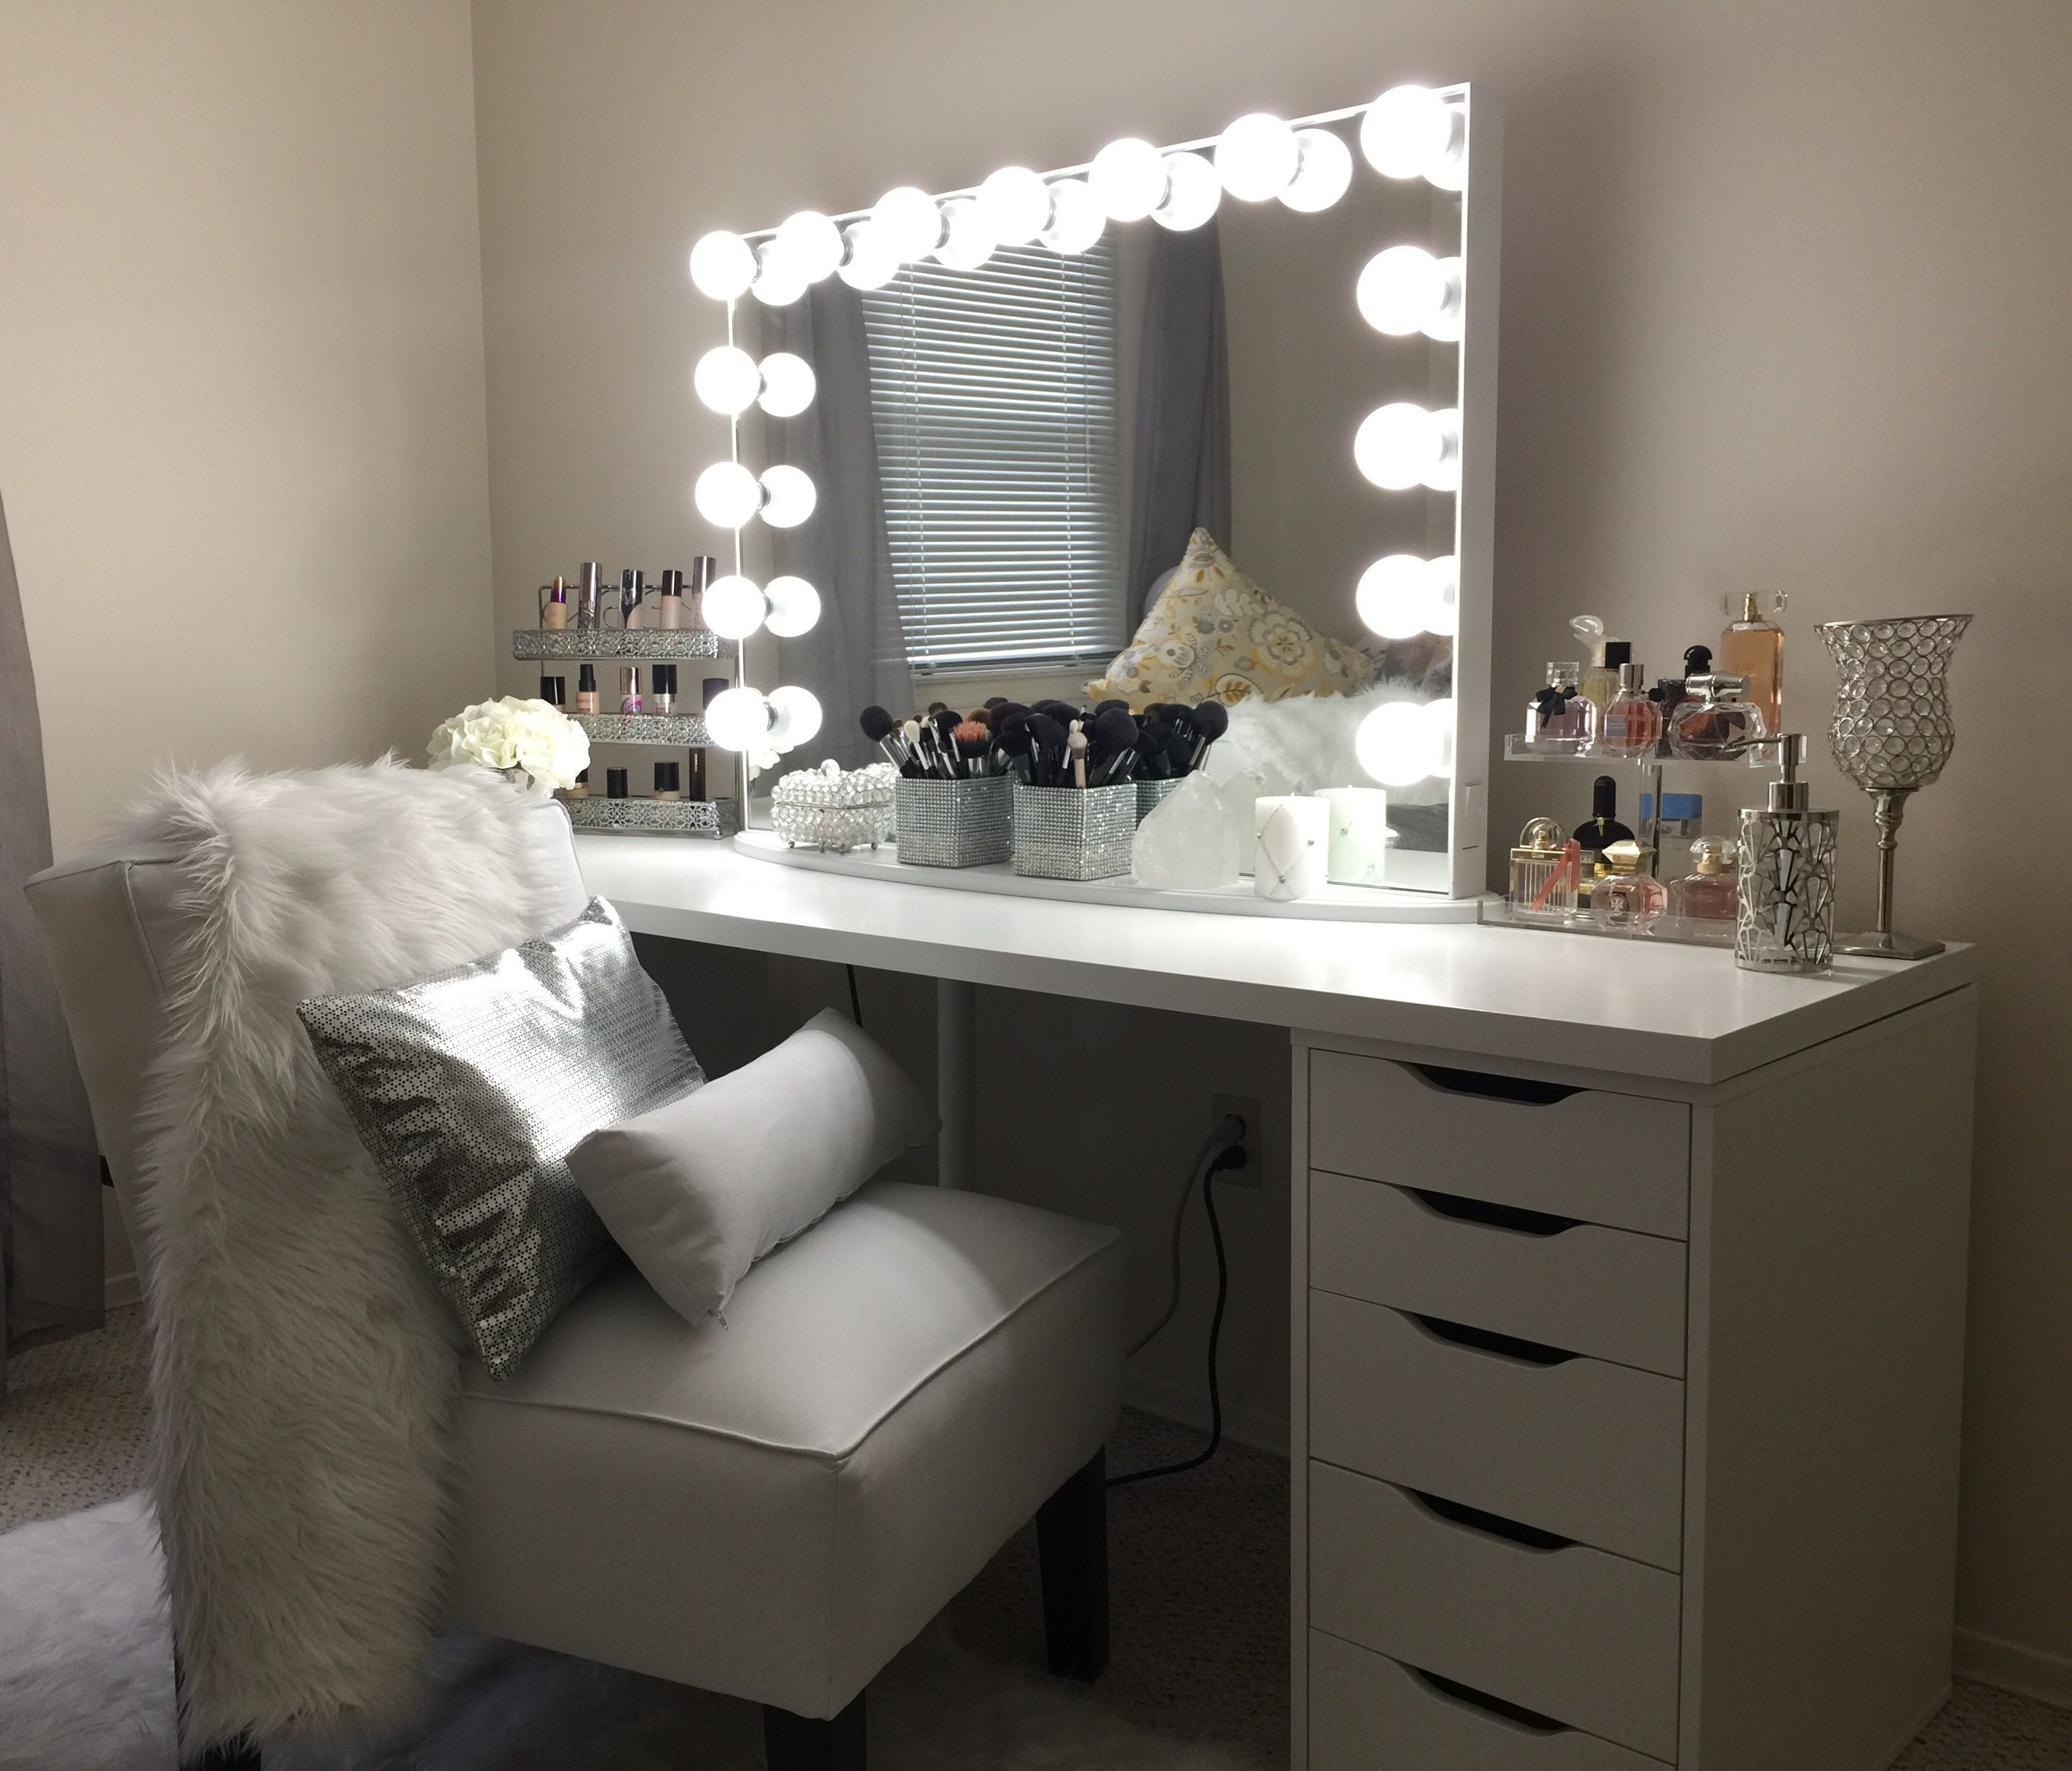 Pin on Vanity Table Ideas